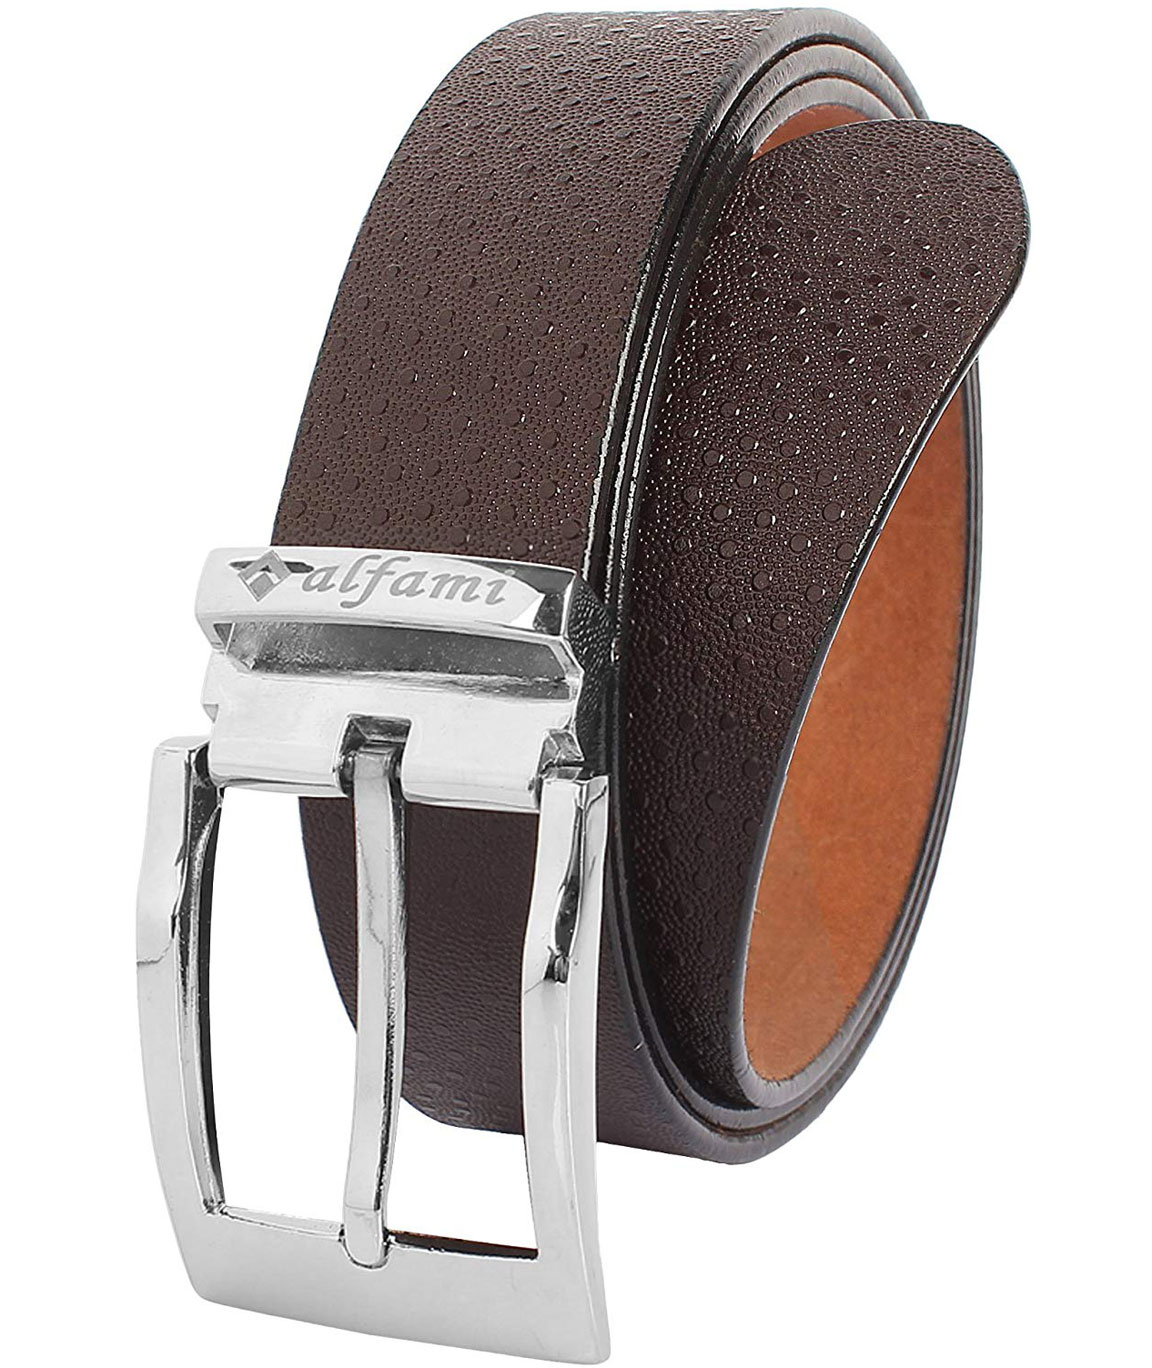 Alfami Mens Genuine Leather Belt, Brown Colour, All Sizes, Spotted Pattern